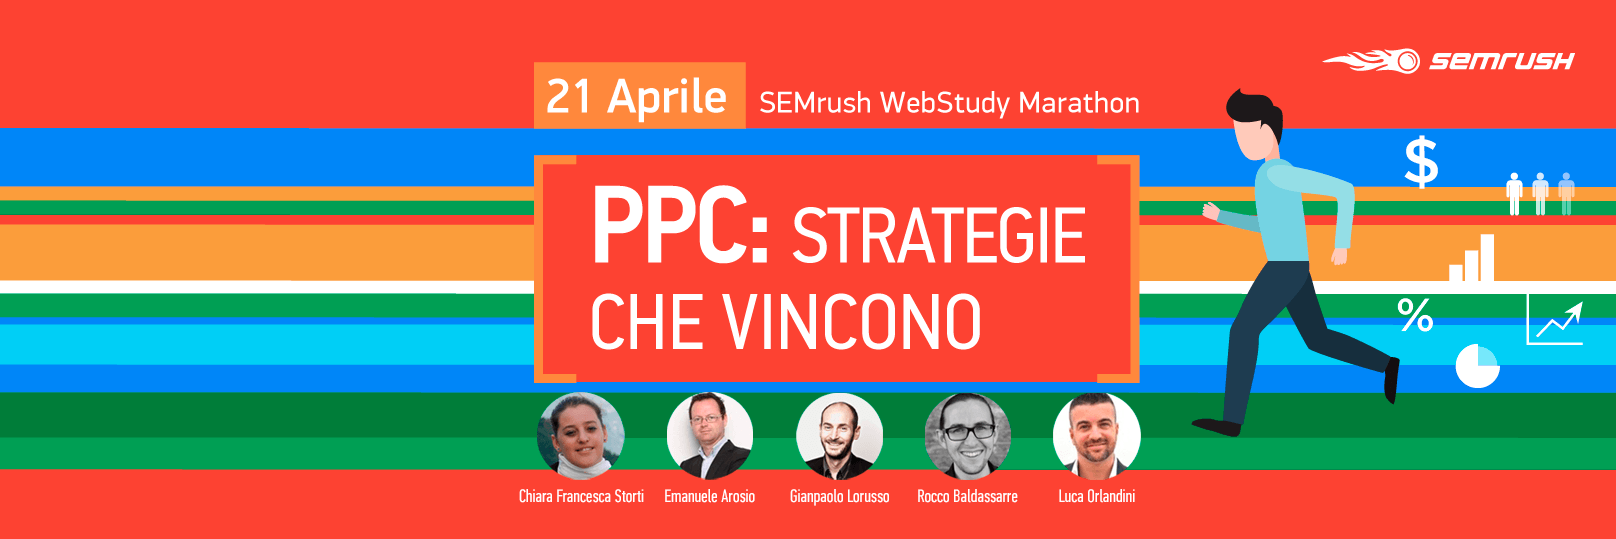 PPC: Strategie che vincono